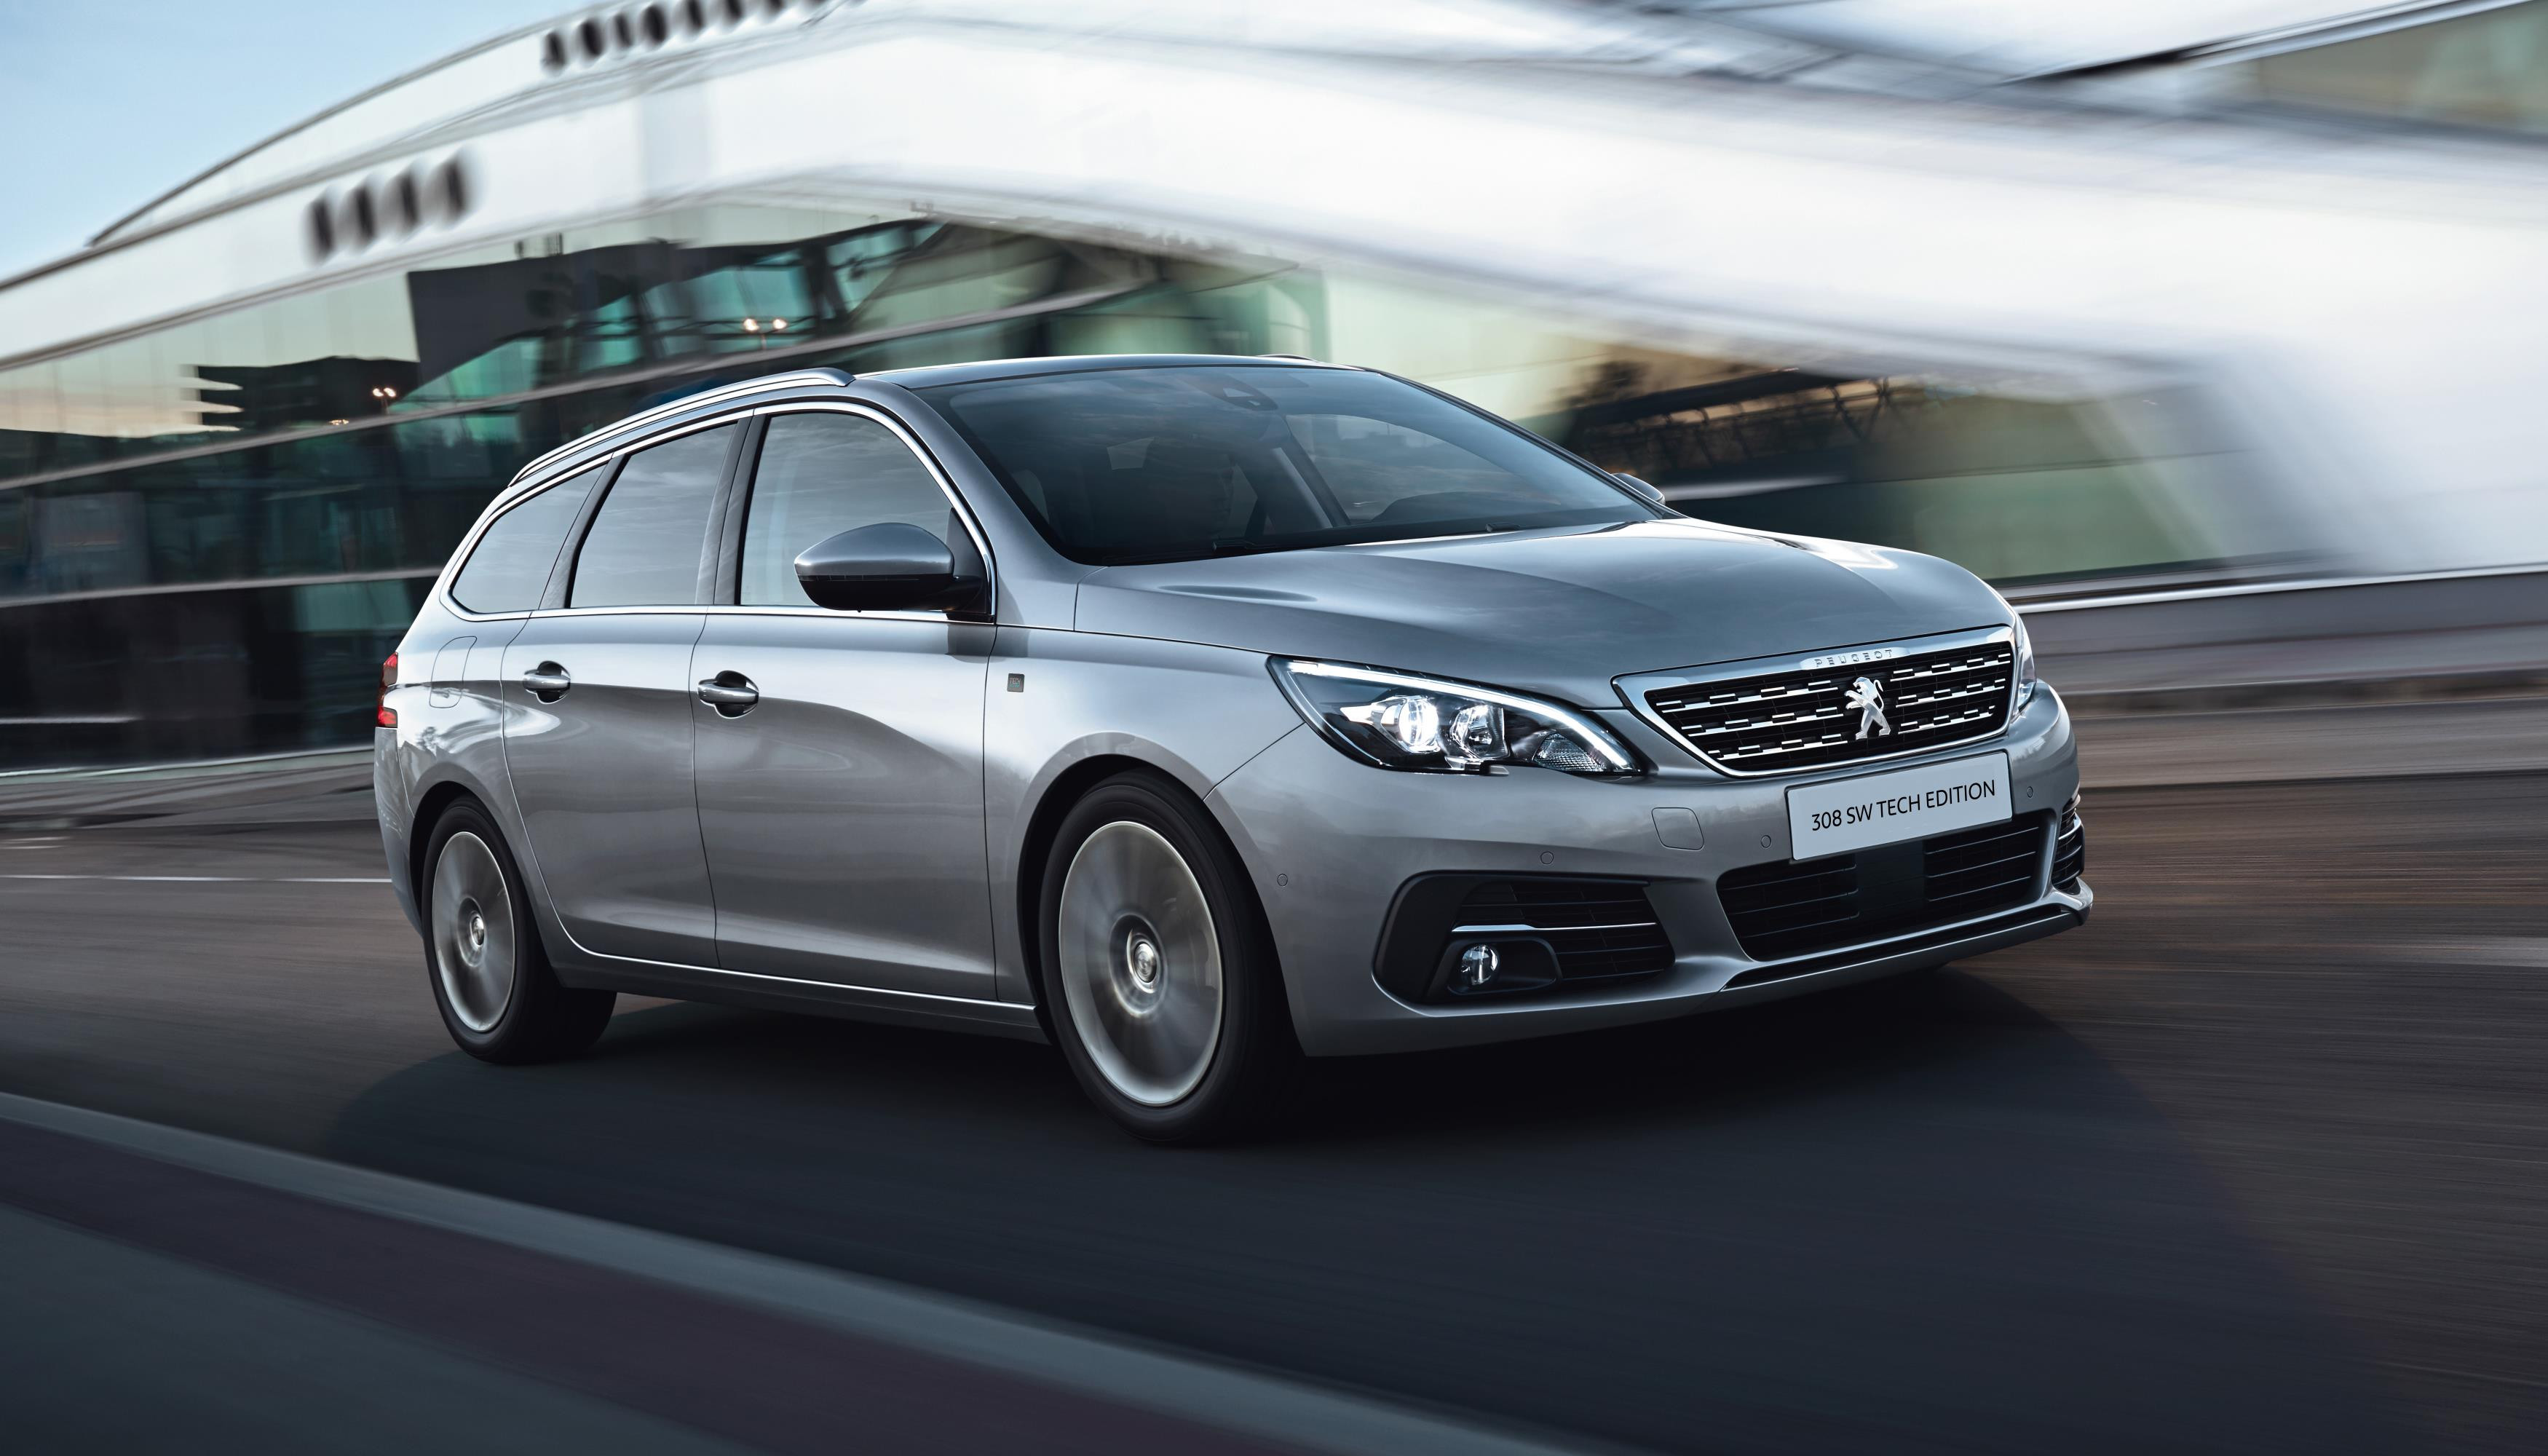 Silvery grey Peugeot 308 SW driving towards you at speed